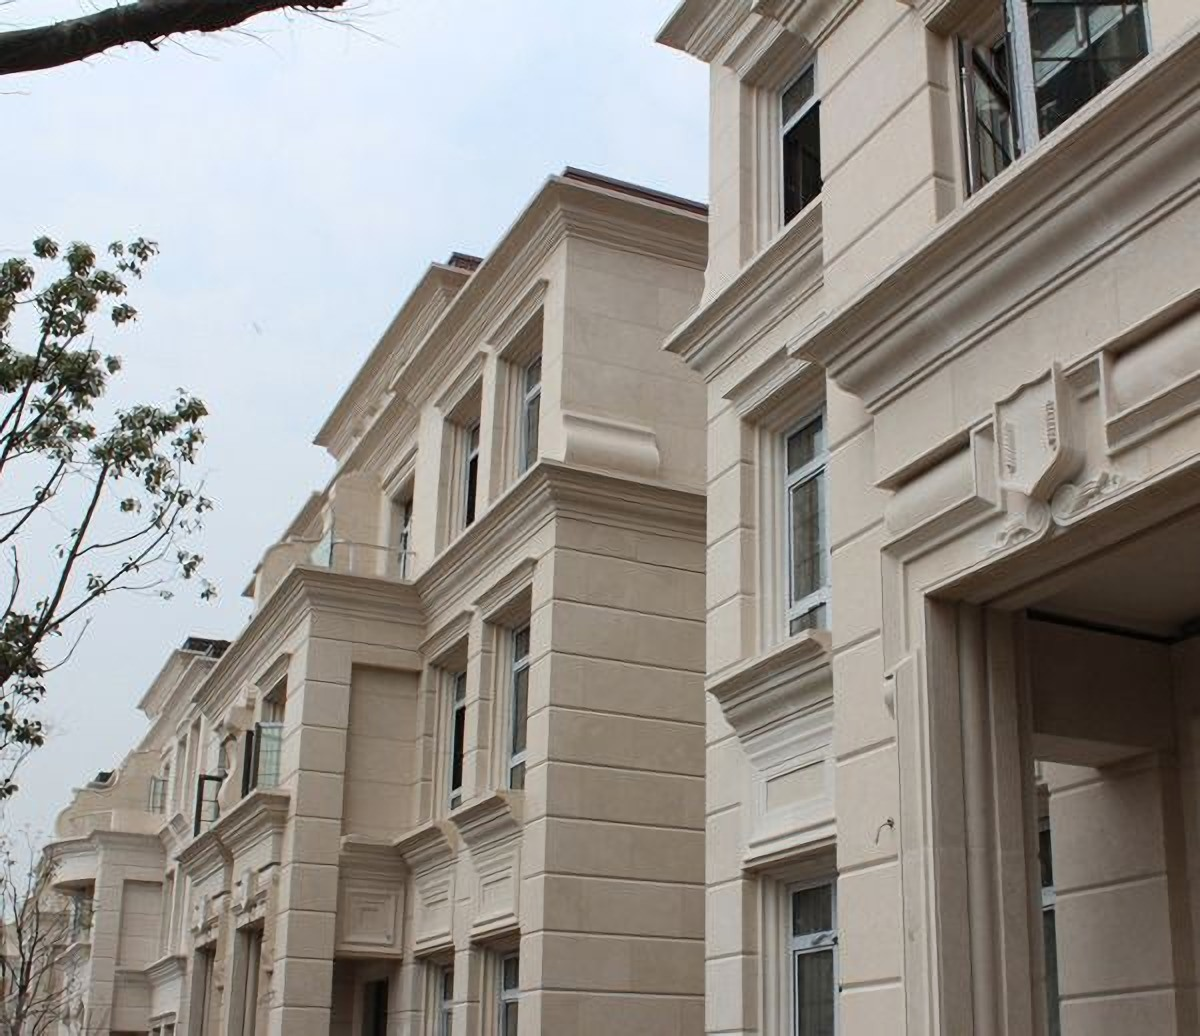 China White Moca Cream Limestone Marble Wall Tiles Exterior Cladding Facades Stone Photos Pictures Made In China Com